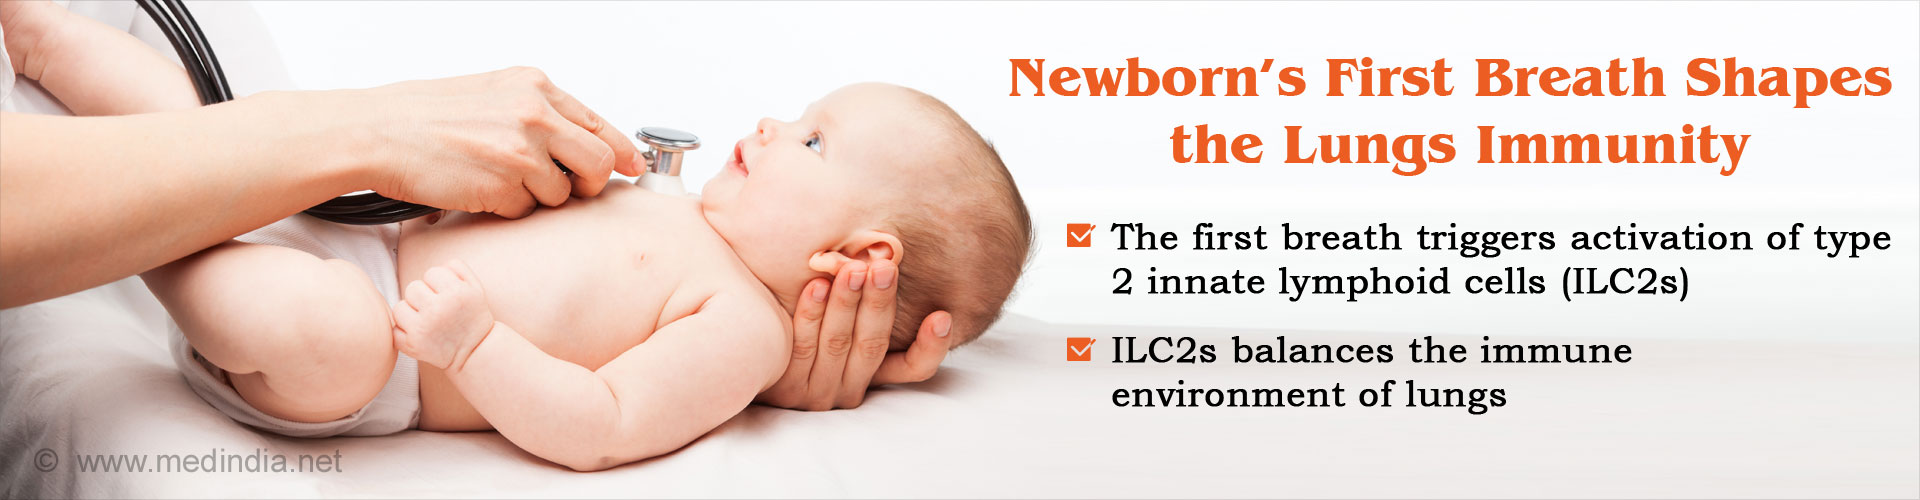 Newborn's first breath shapes the lungs immunity